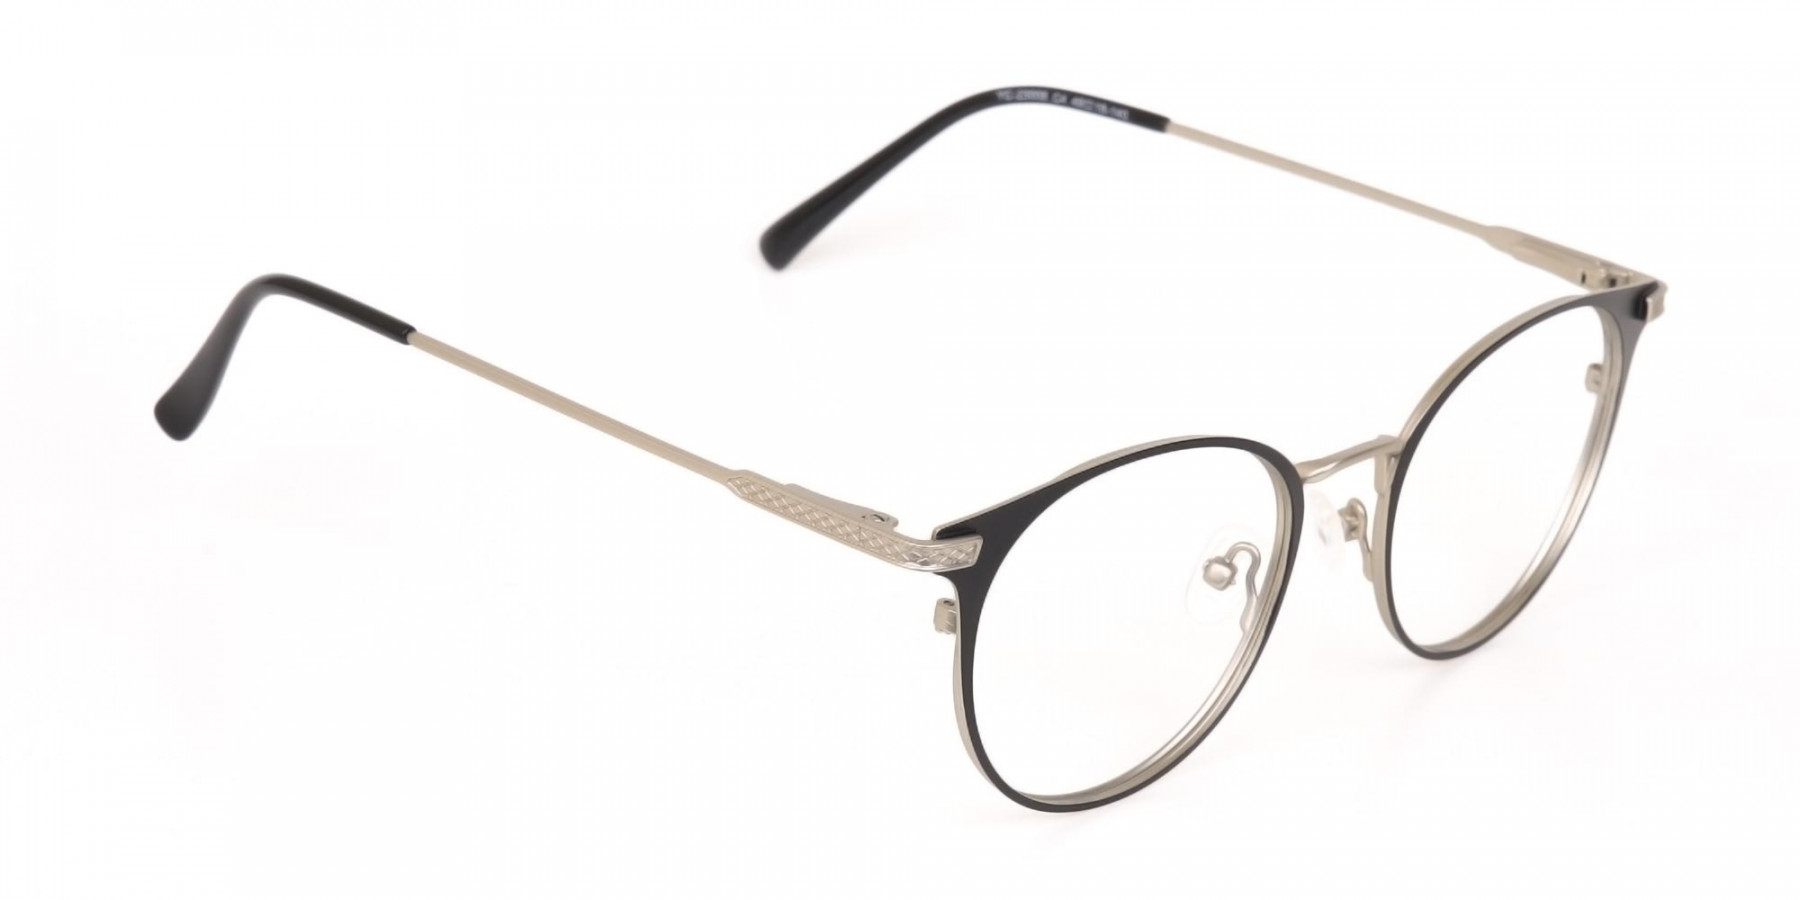 Matte Black and Silver Round Glasses Unisex -1